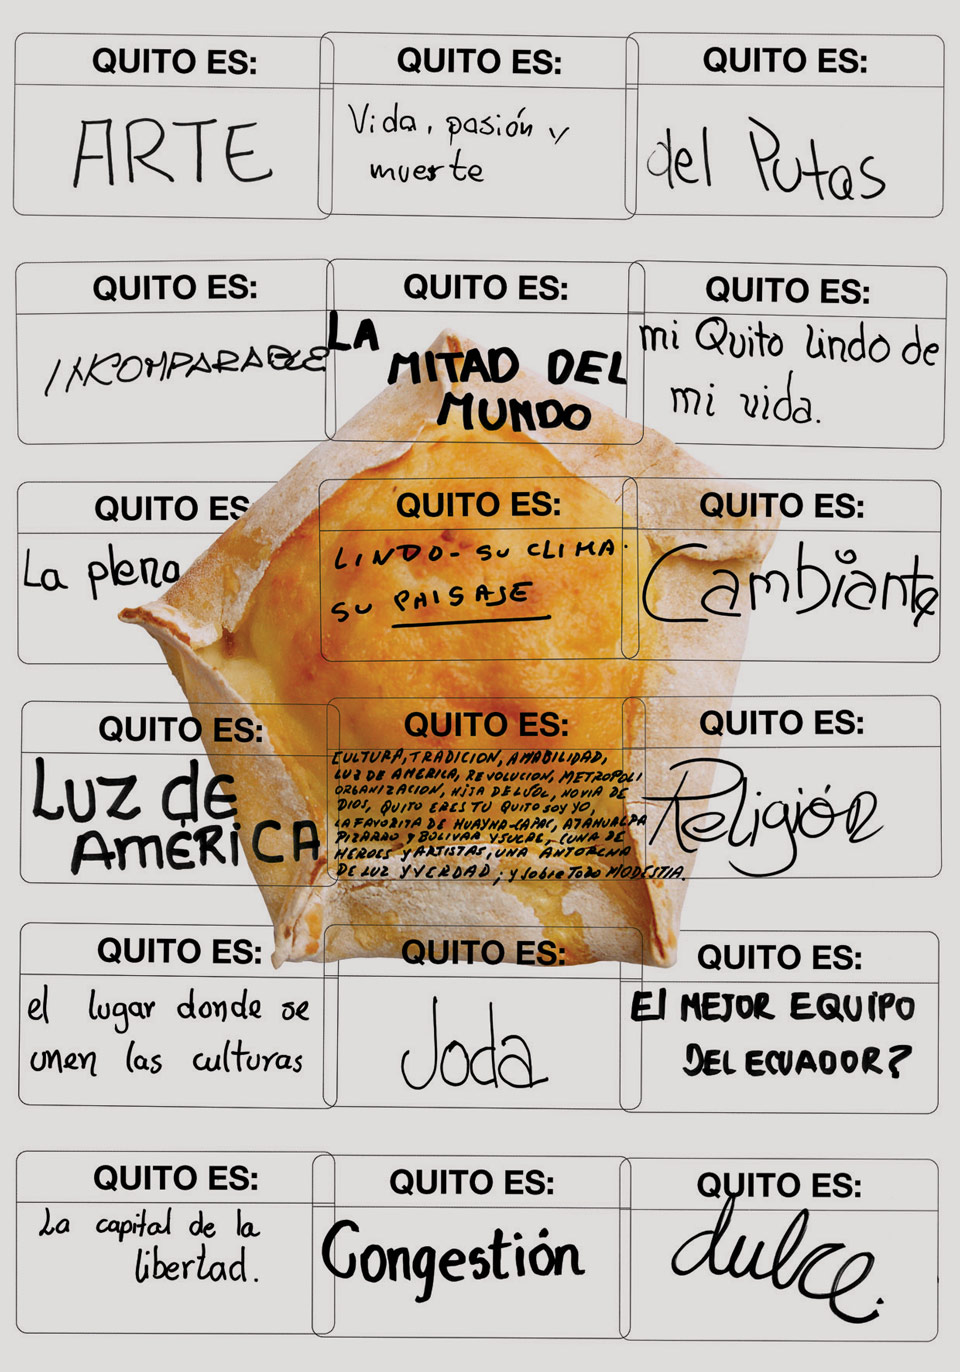 quitoes-poster